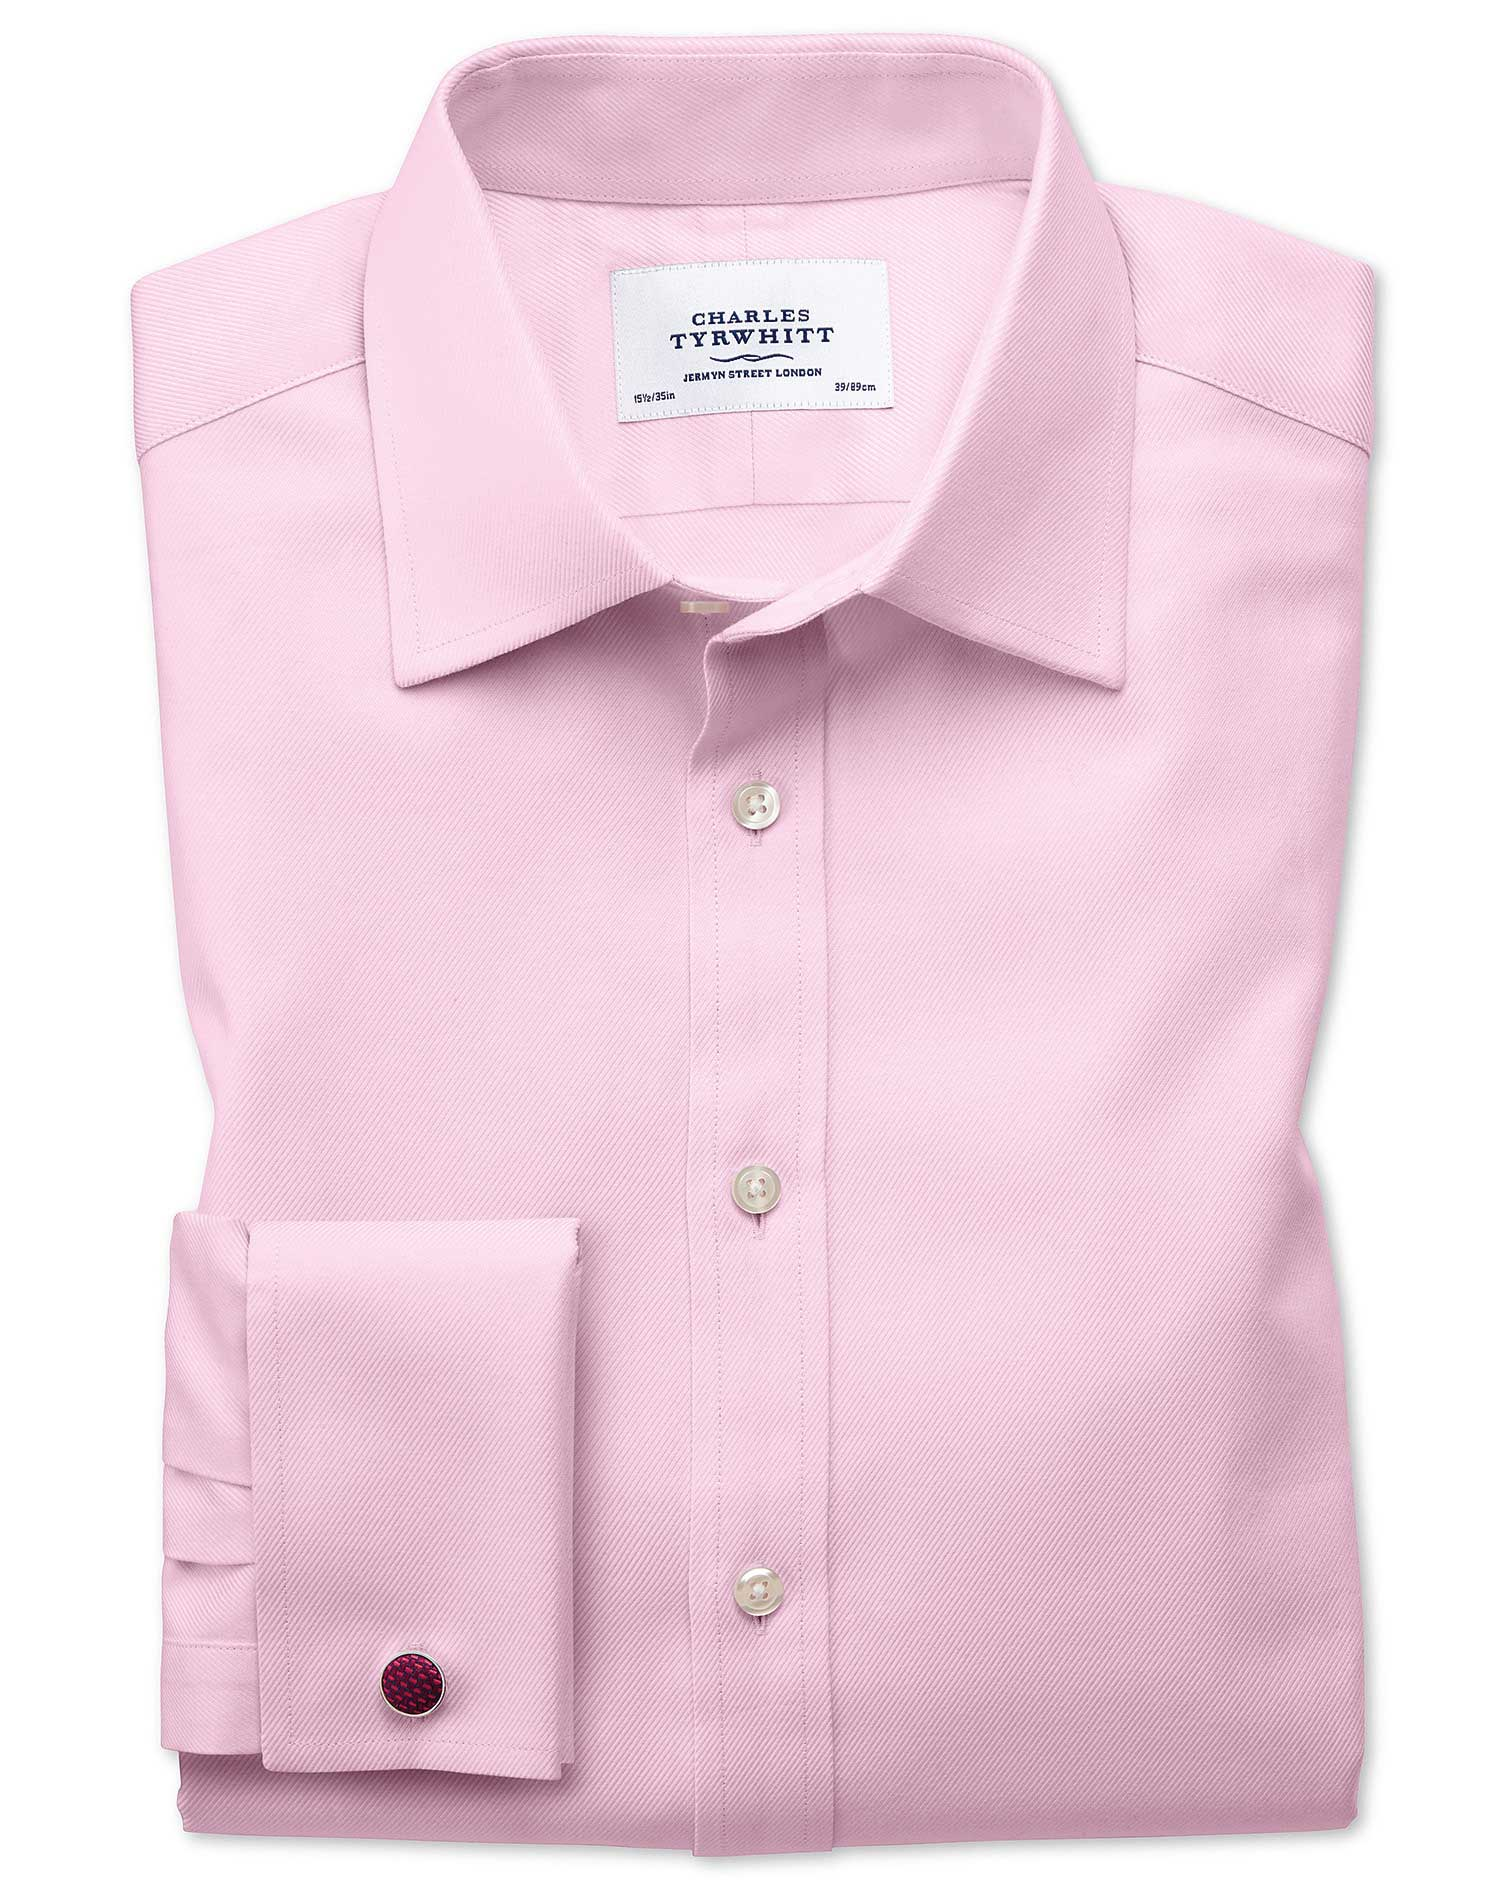 Slim Fit Egyptian Cotton Cavalry Twill Light Pink Formal Shirt Double Cuff Size 17.5/34 by Charles T